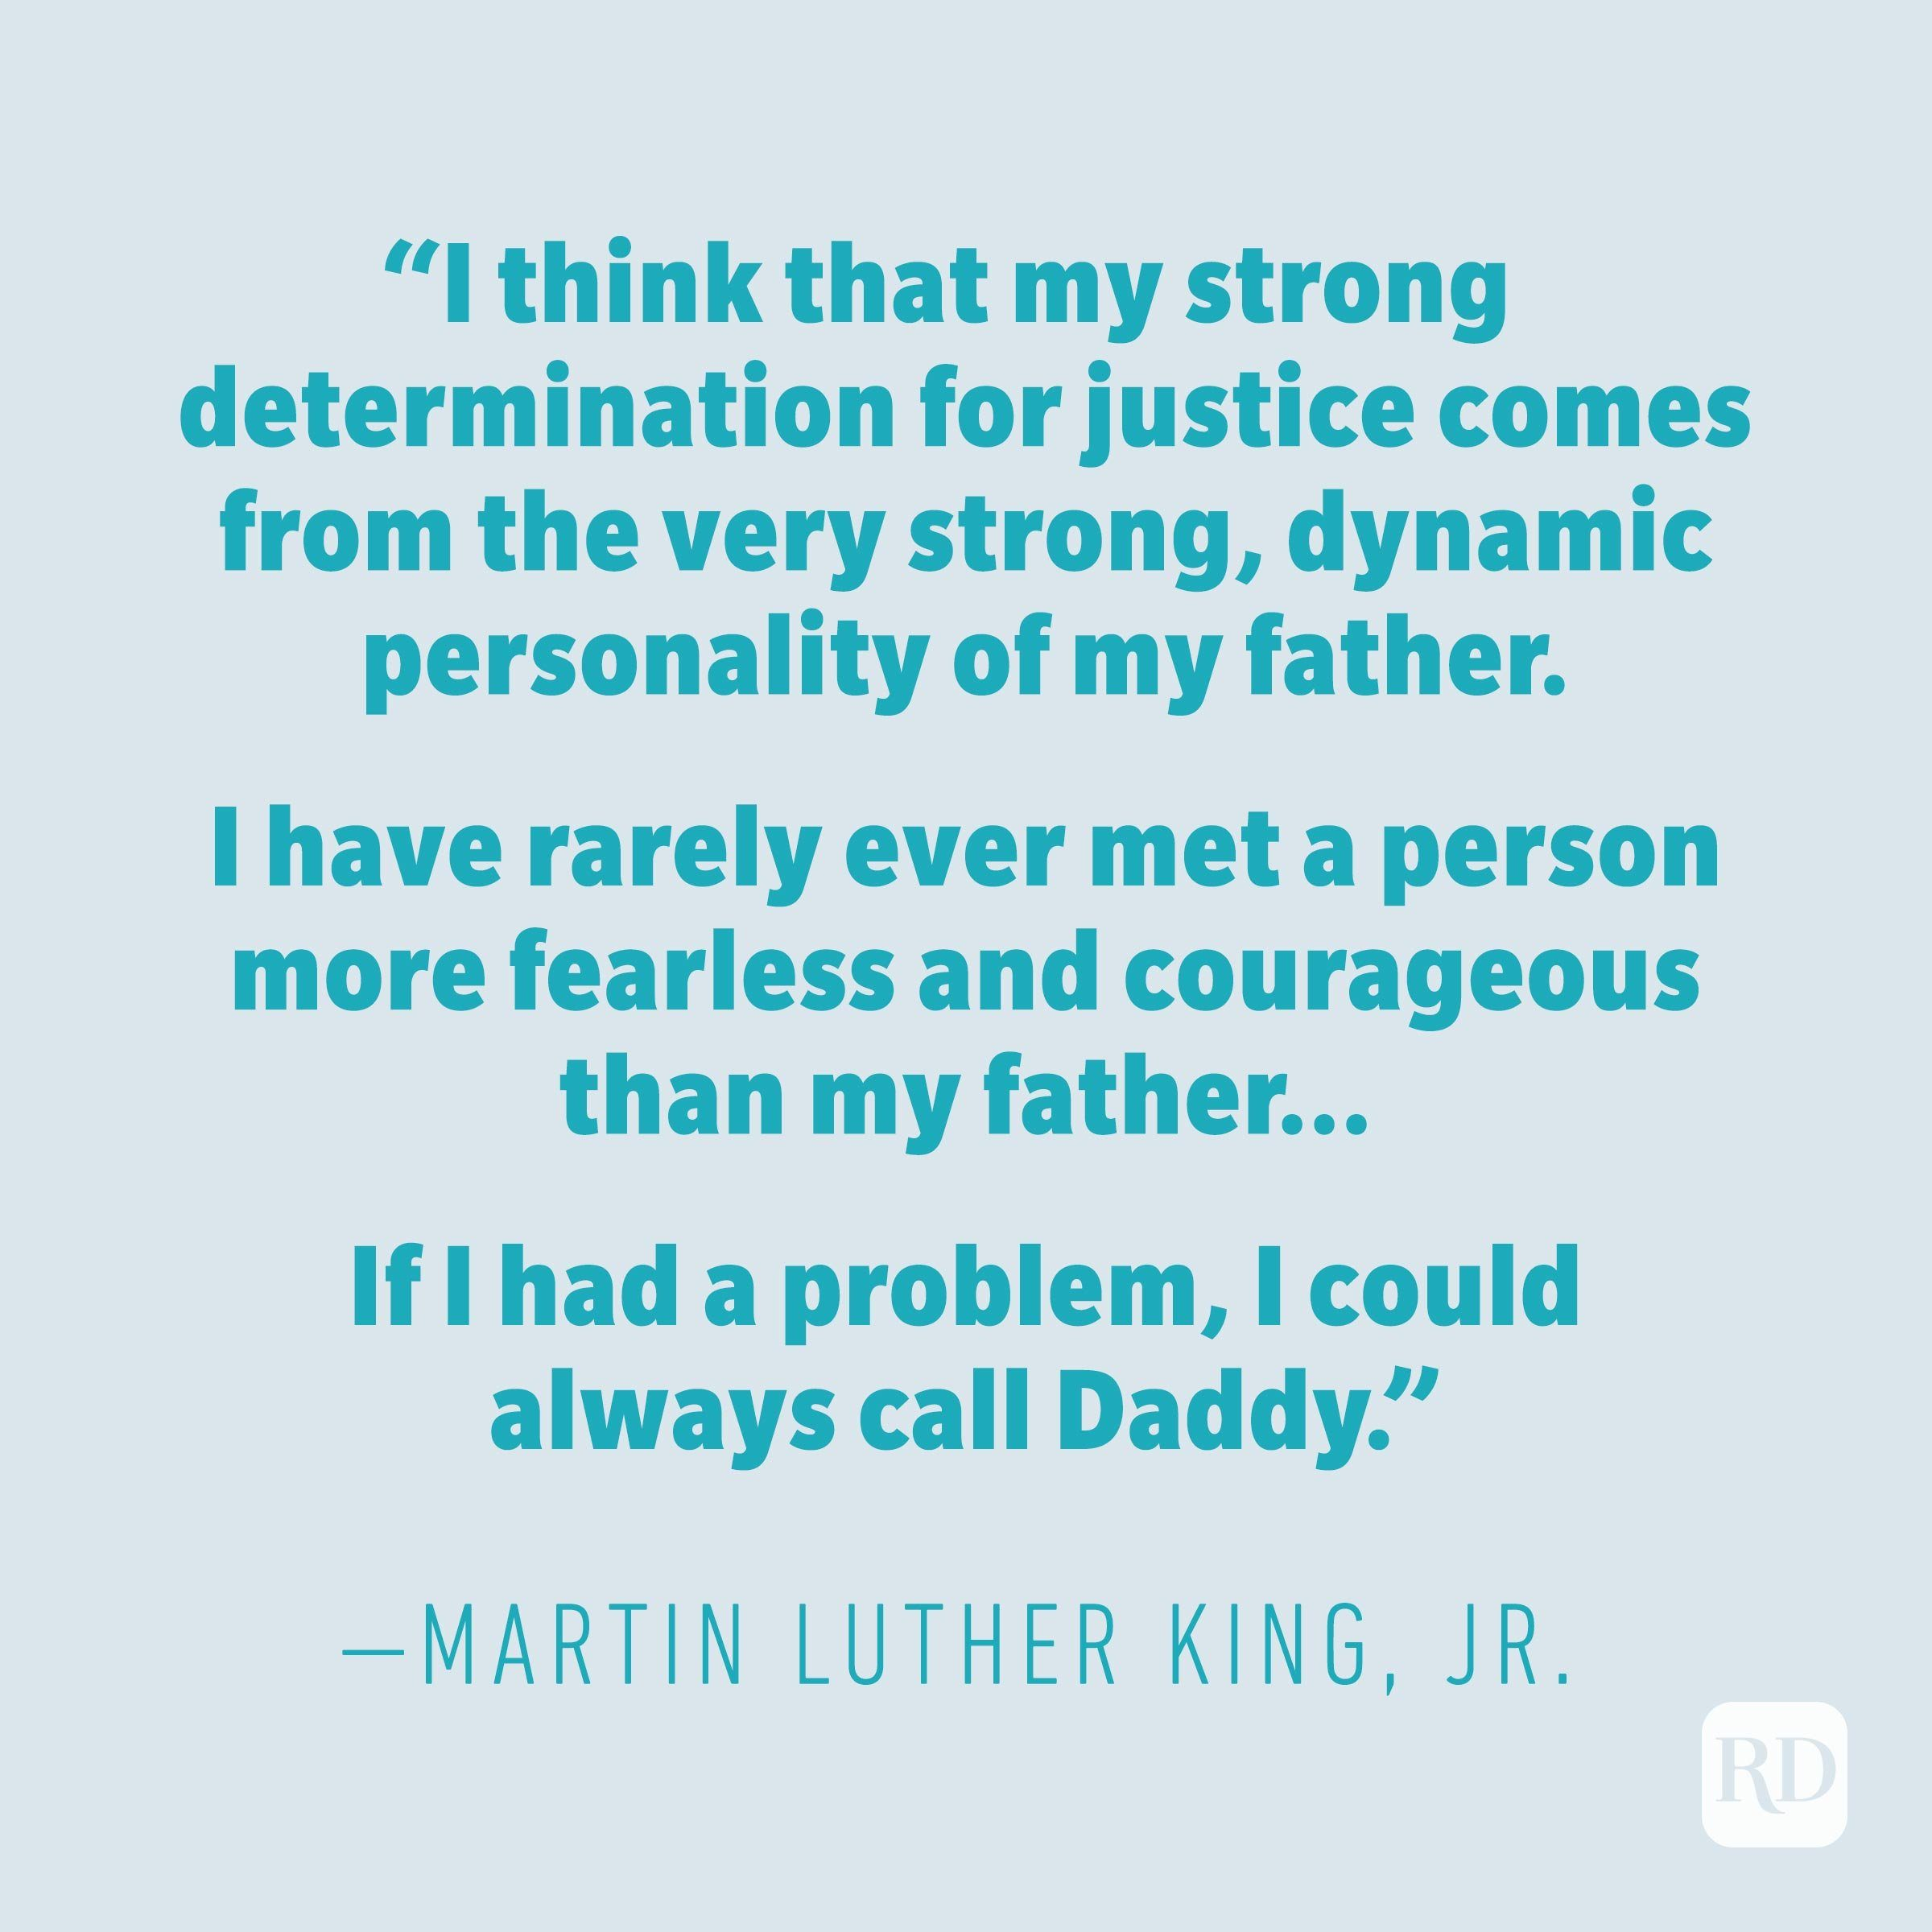 Martin Luther King Jr. quote